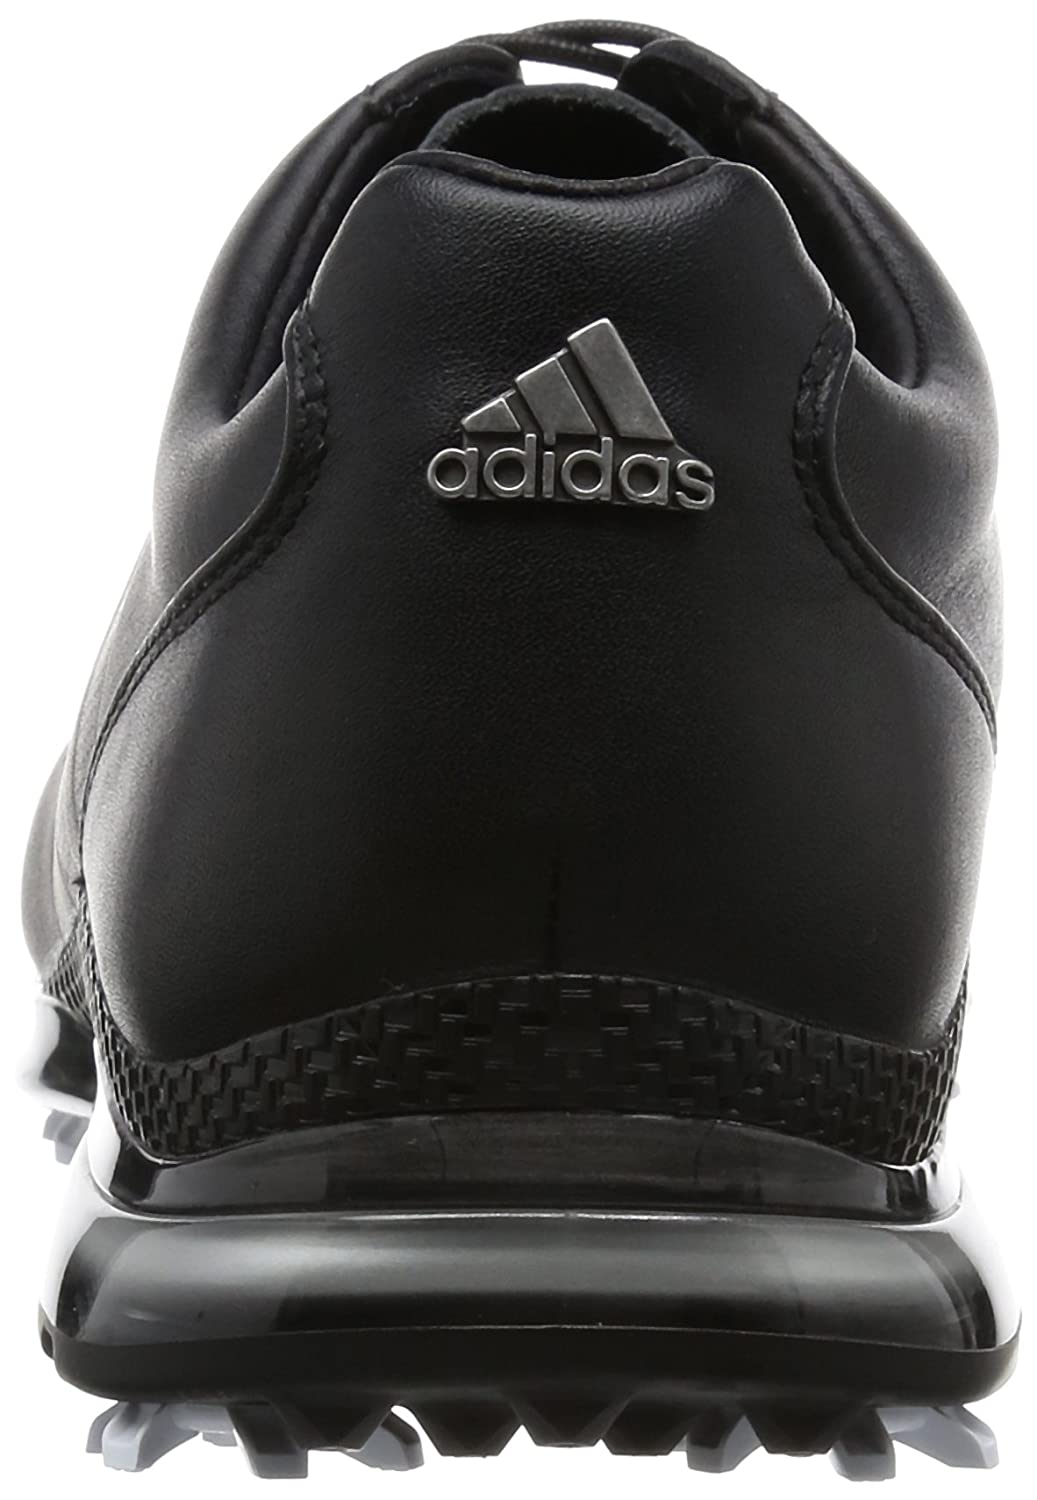 cheap for discount 3dc84 cd8ff adidas Adipure TP - Zapatos de Golf para Hombre Amazon.es Zapatos y  complementos